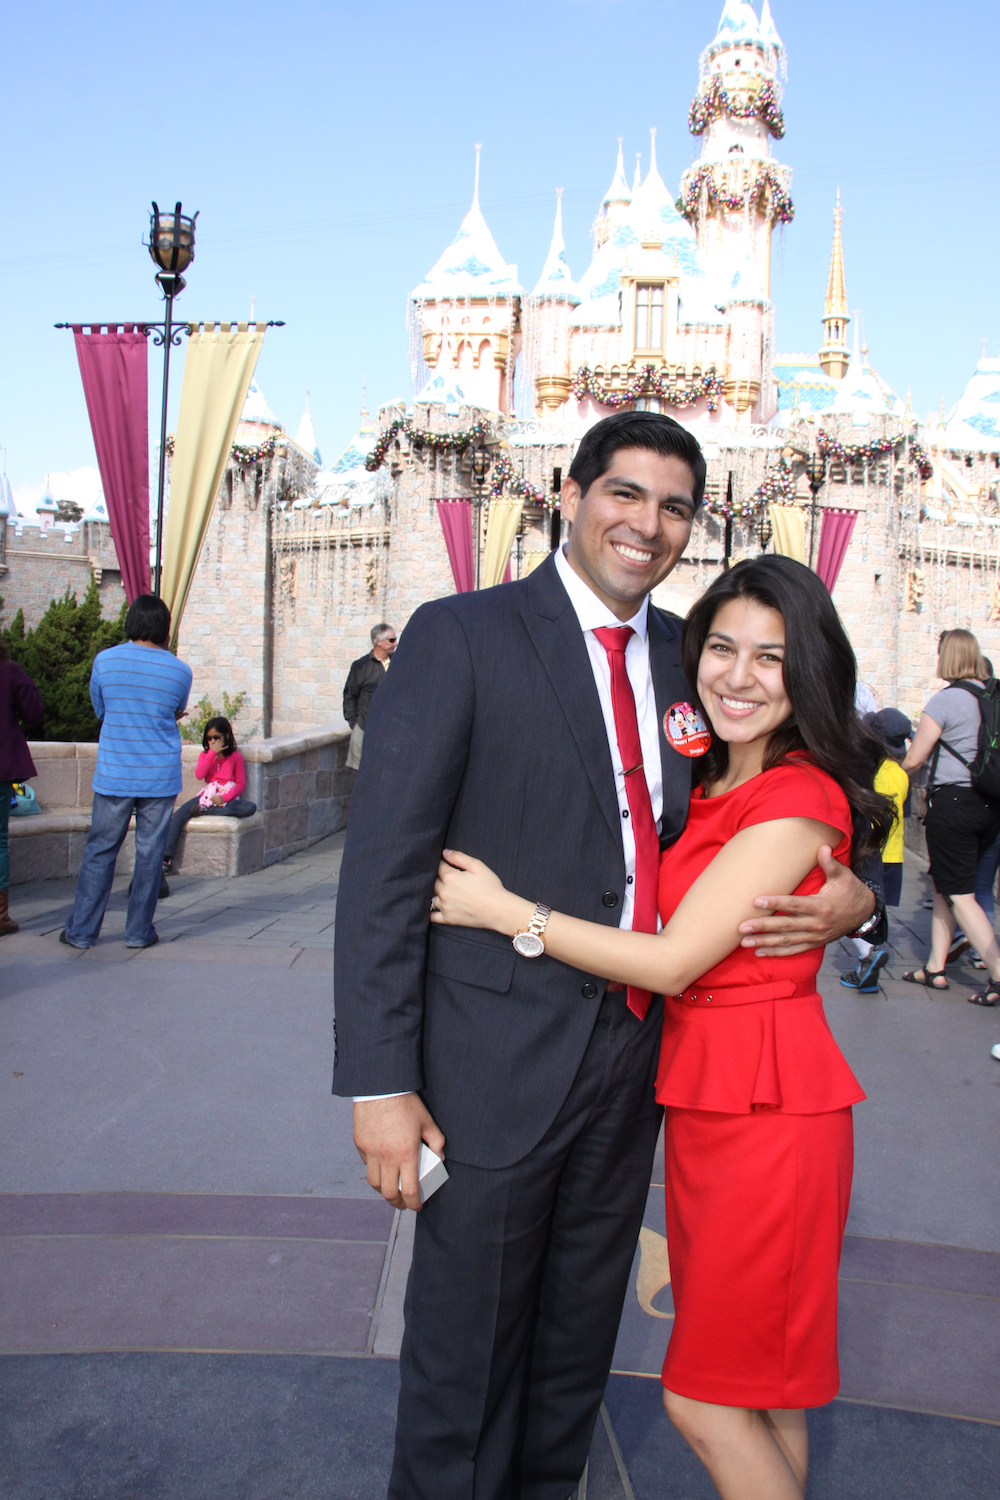 Image 1 of Nathan and Stacey's Disney Proposal